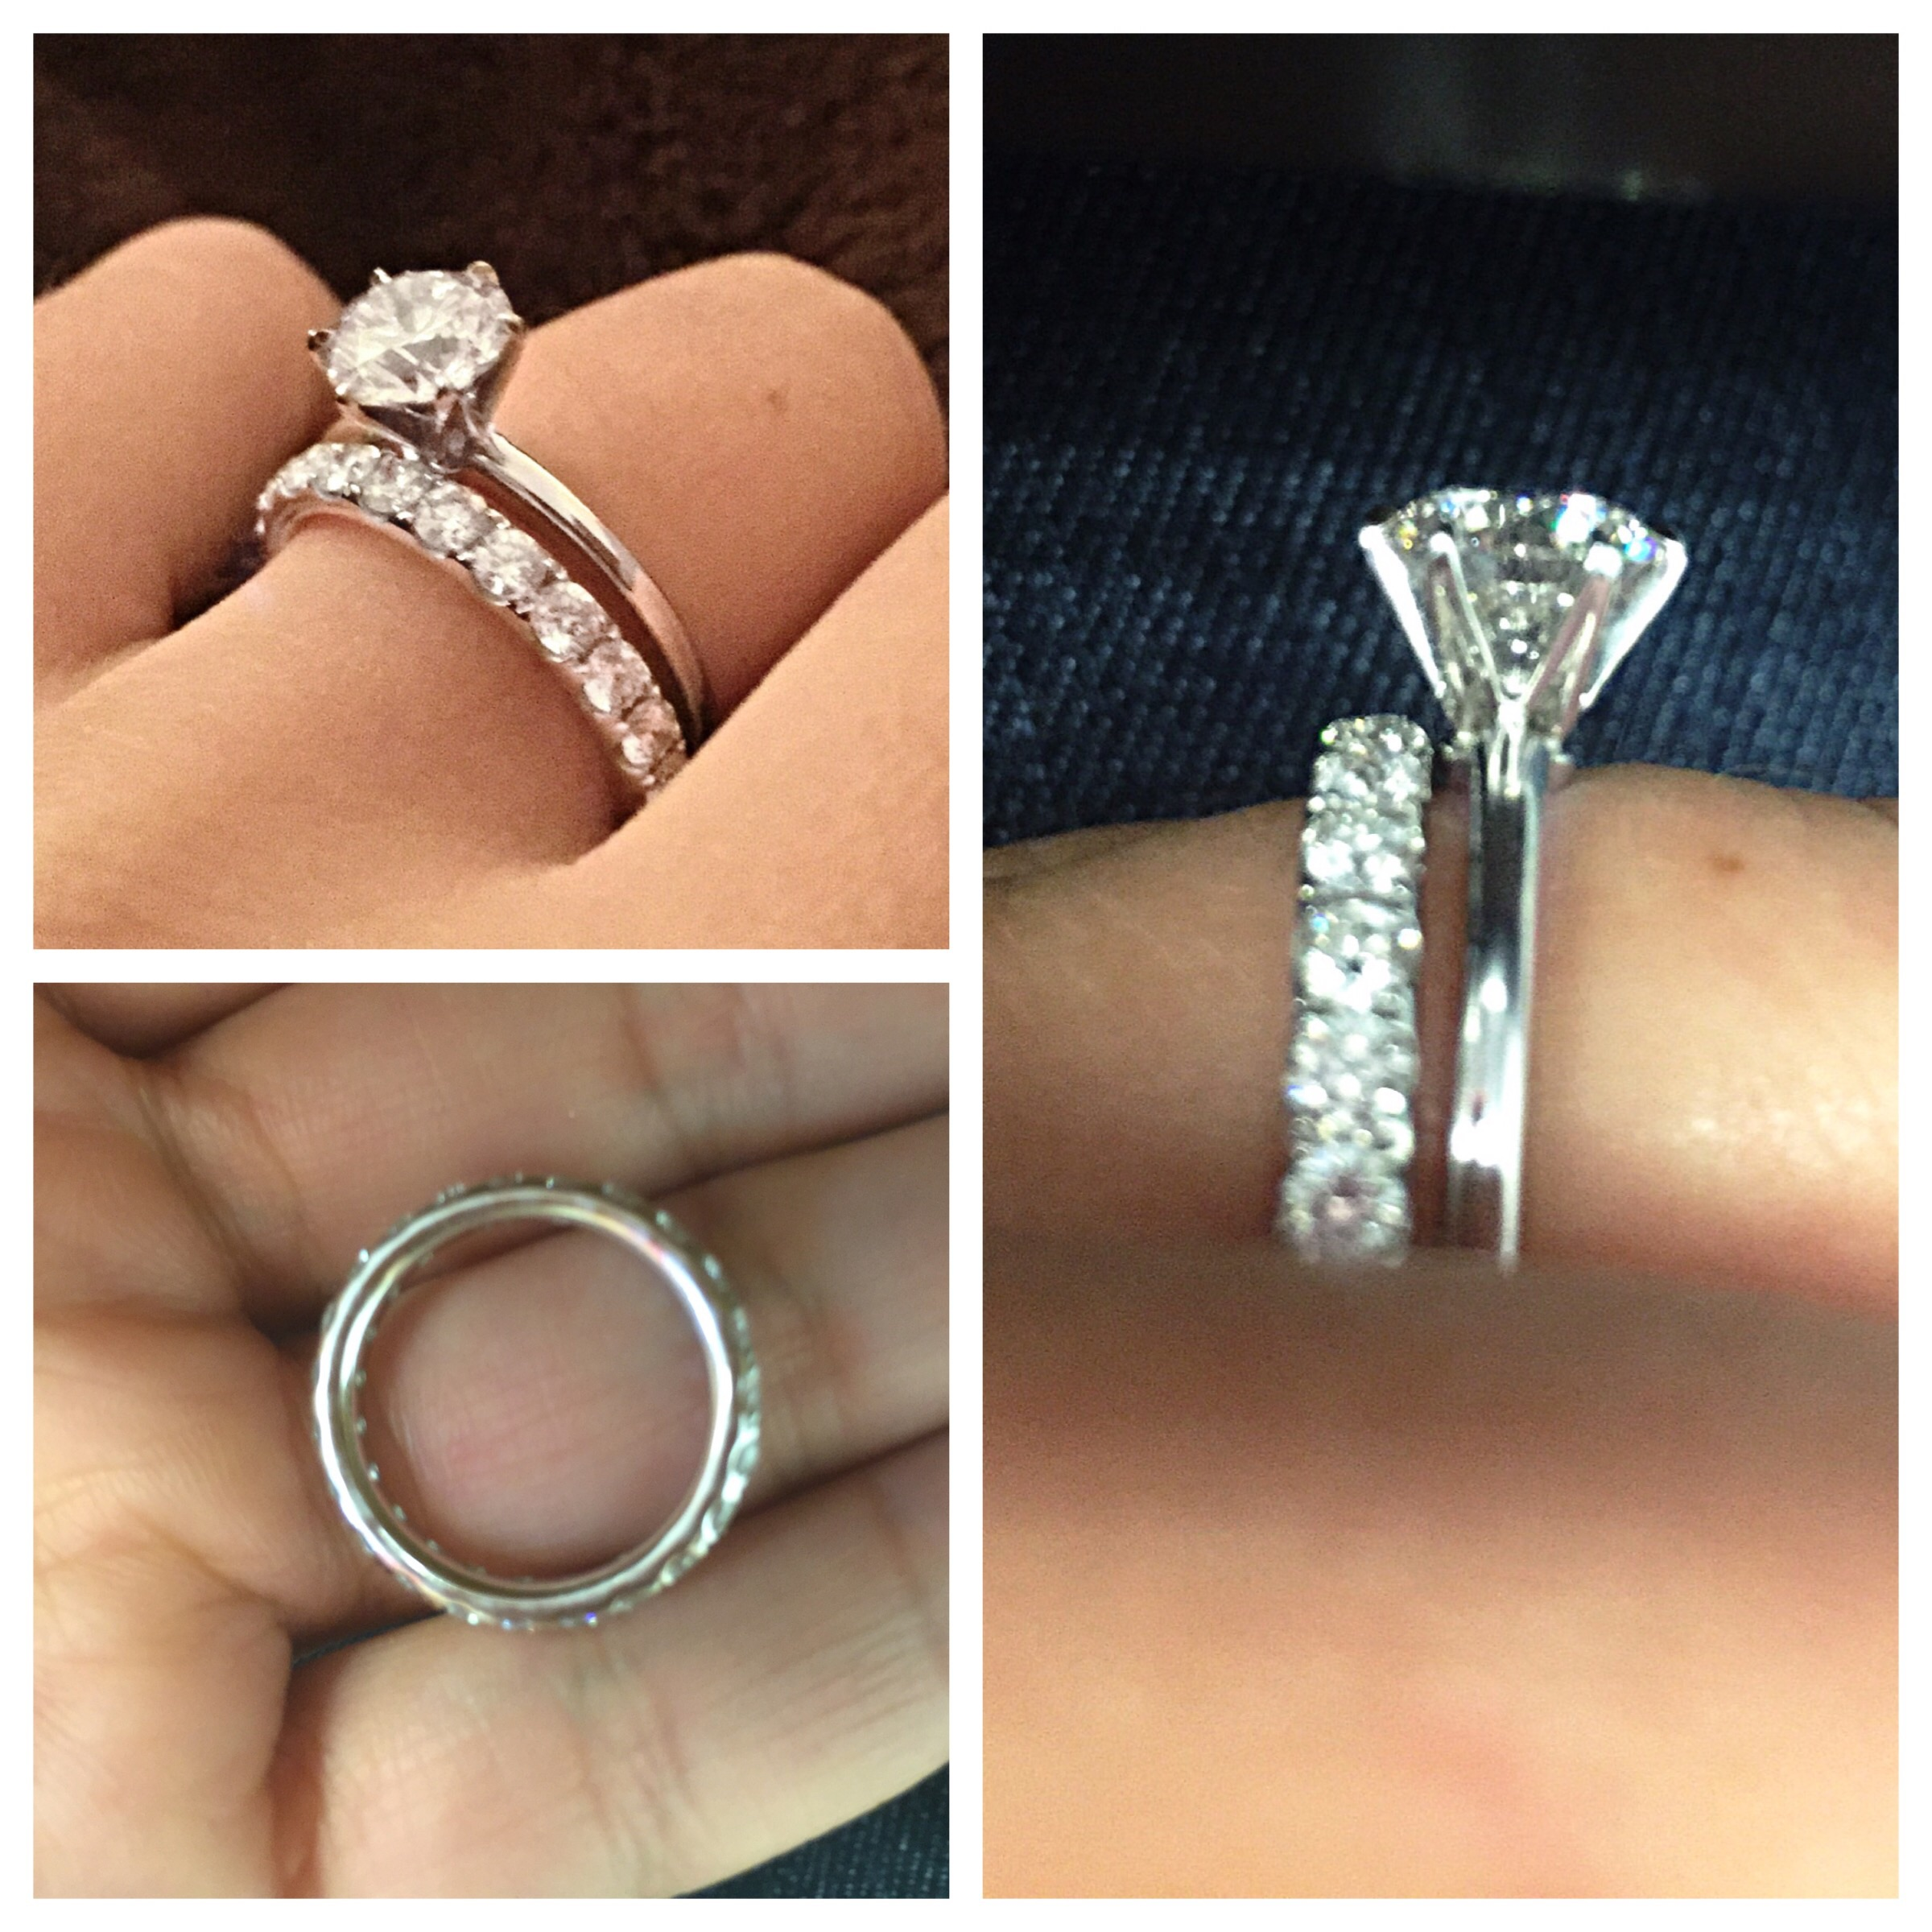 tiffany eternity wedding band alternatives damage low profile wedding ring I chose a 1 5 carat eternity pave band specifically for its extremely low profile that never touches the prongs